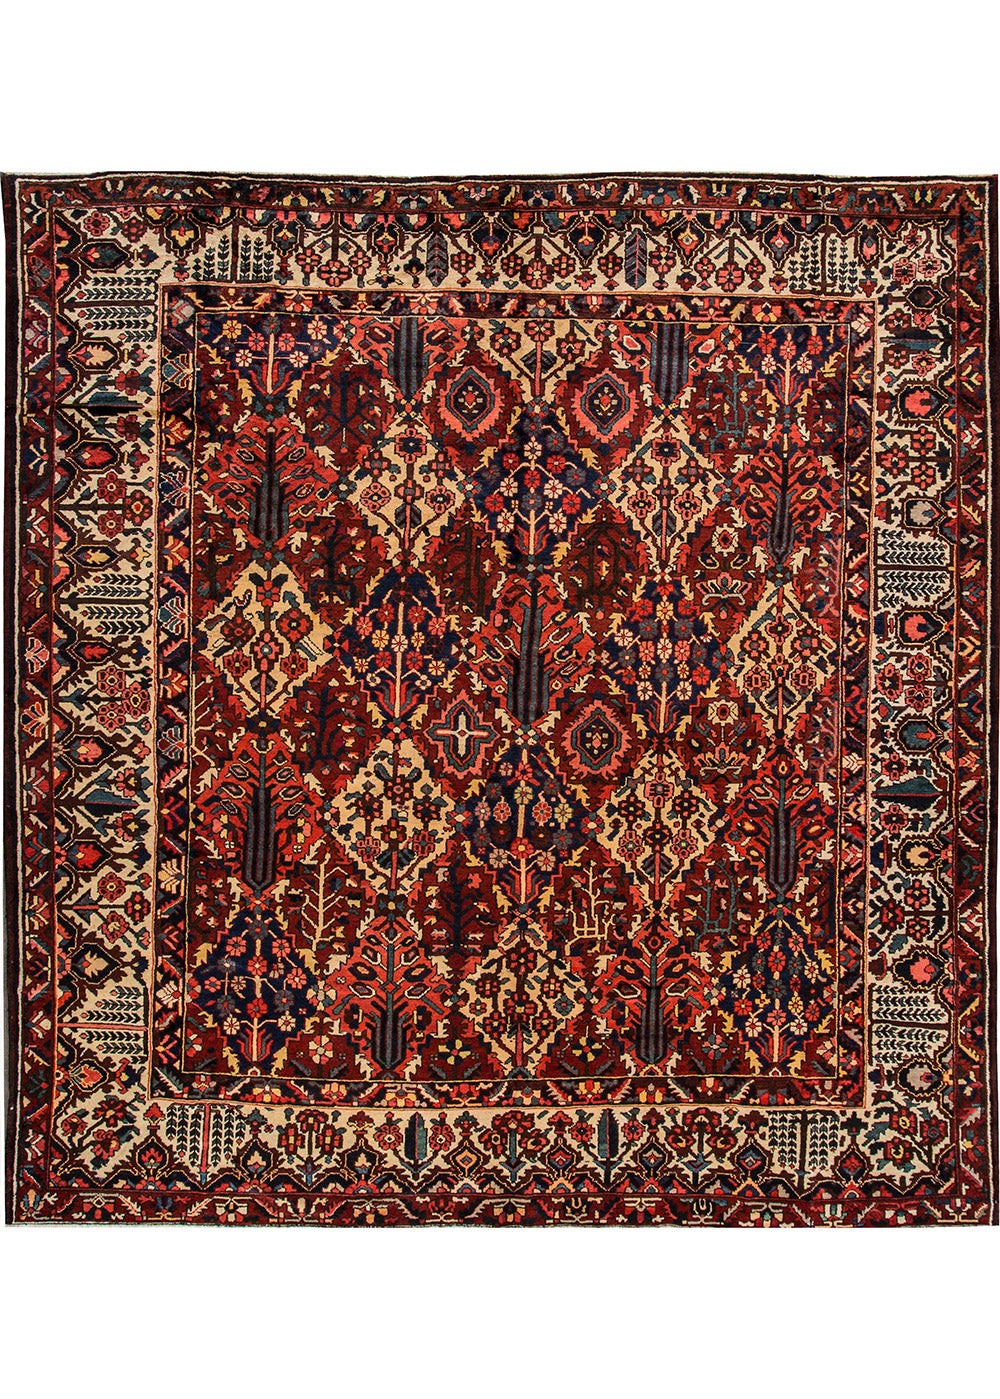 Antique Bakhtiari Rug, 11' X 11'